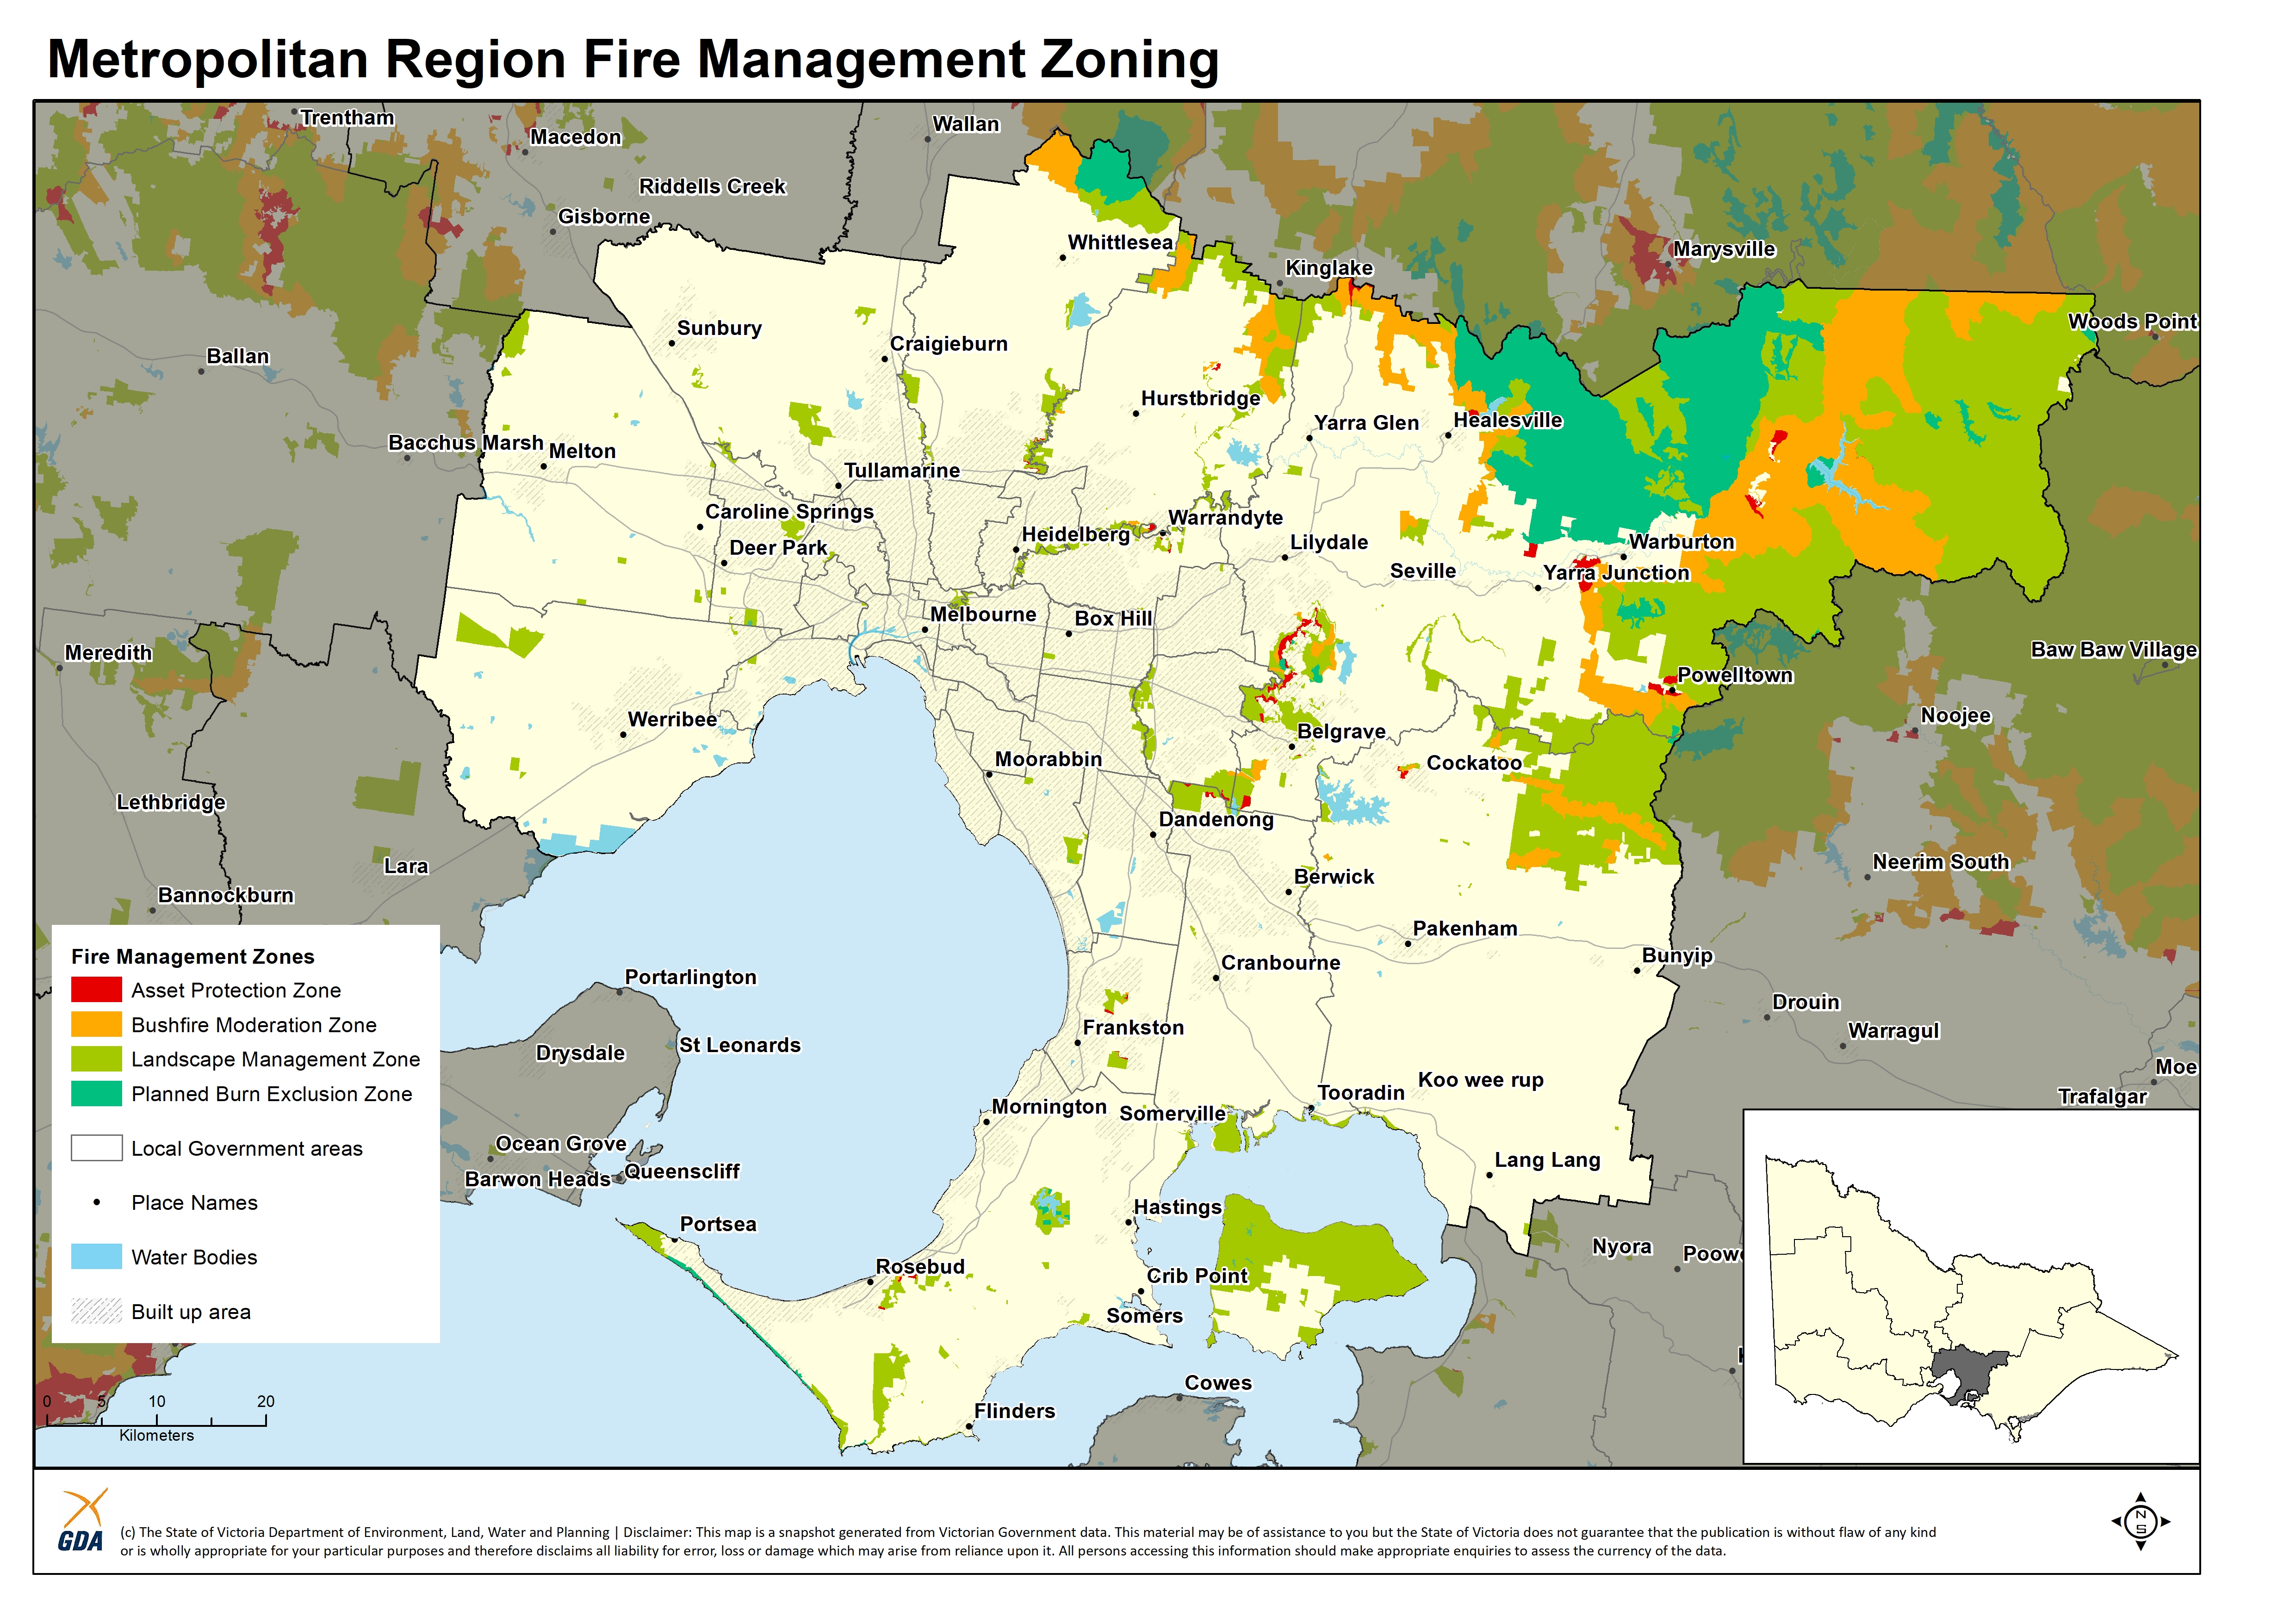 A map of the Fire Management Zones in the Metropolitan Region